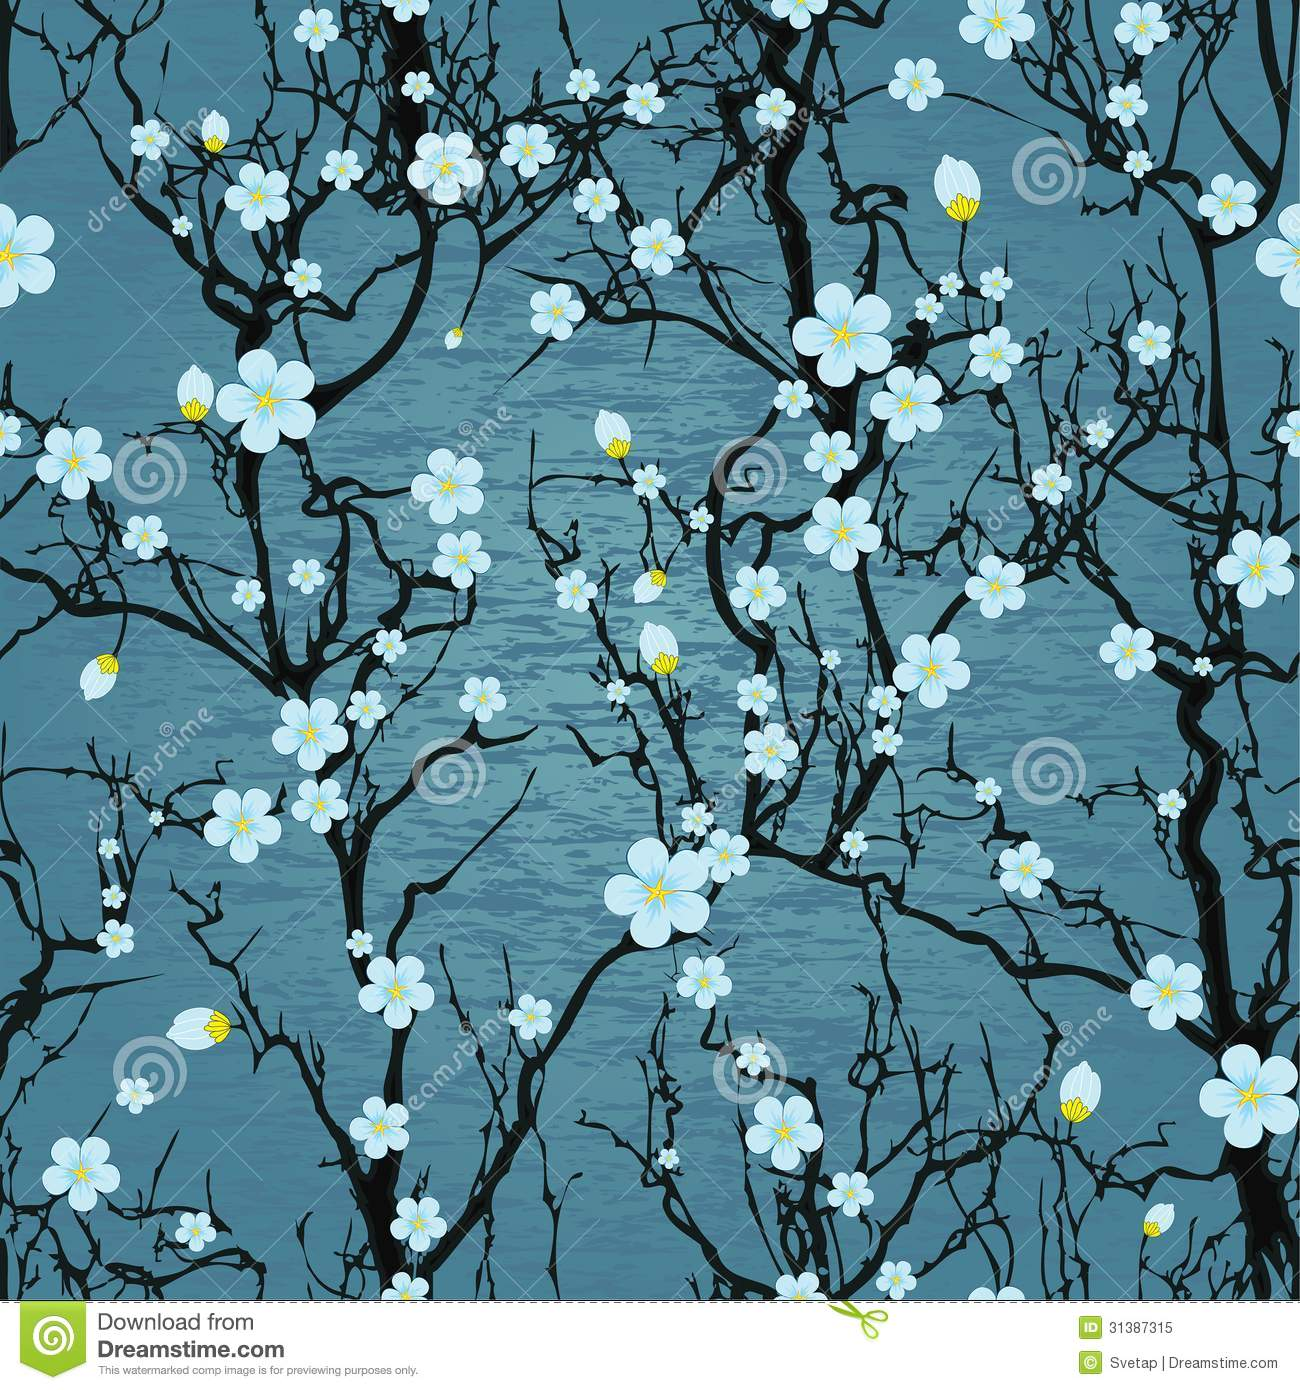 Seamless tree pattern. Japanese cherry blossom